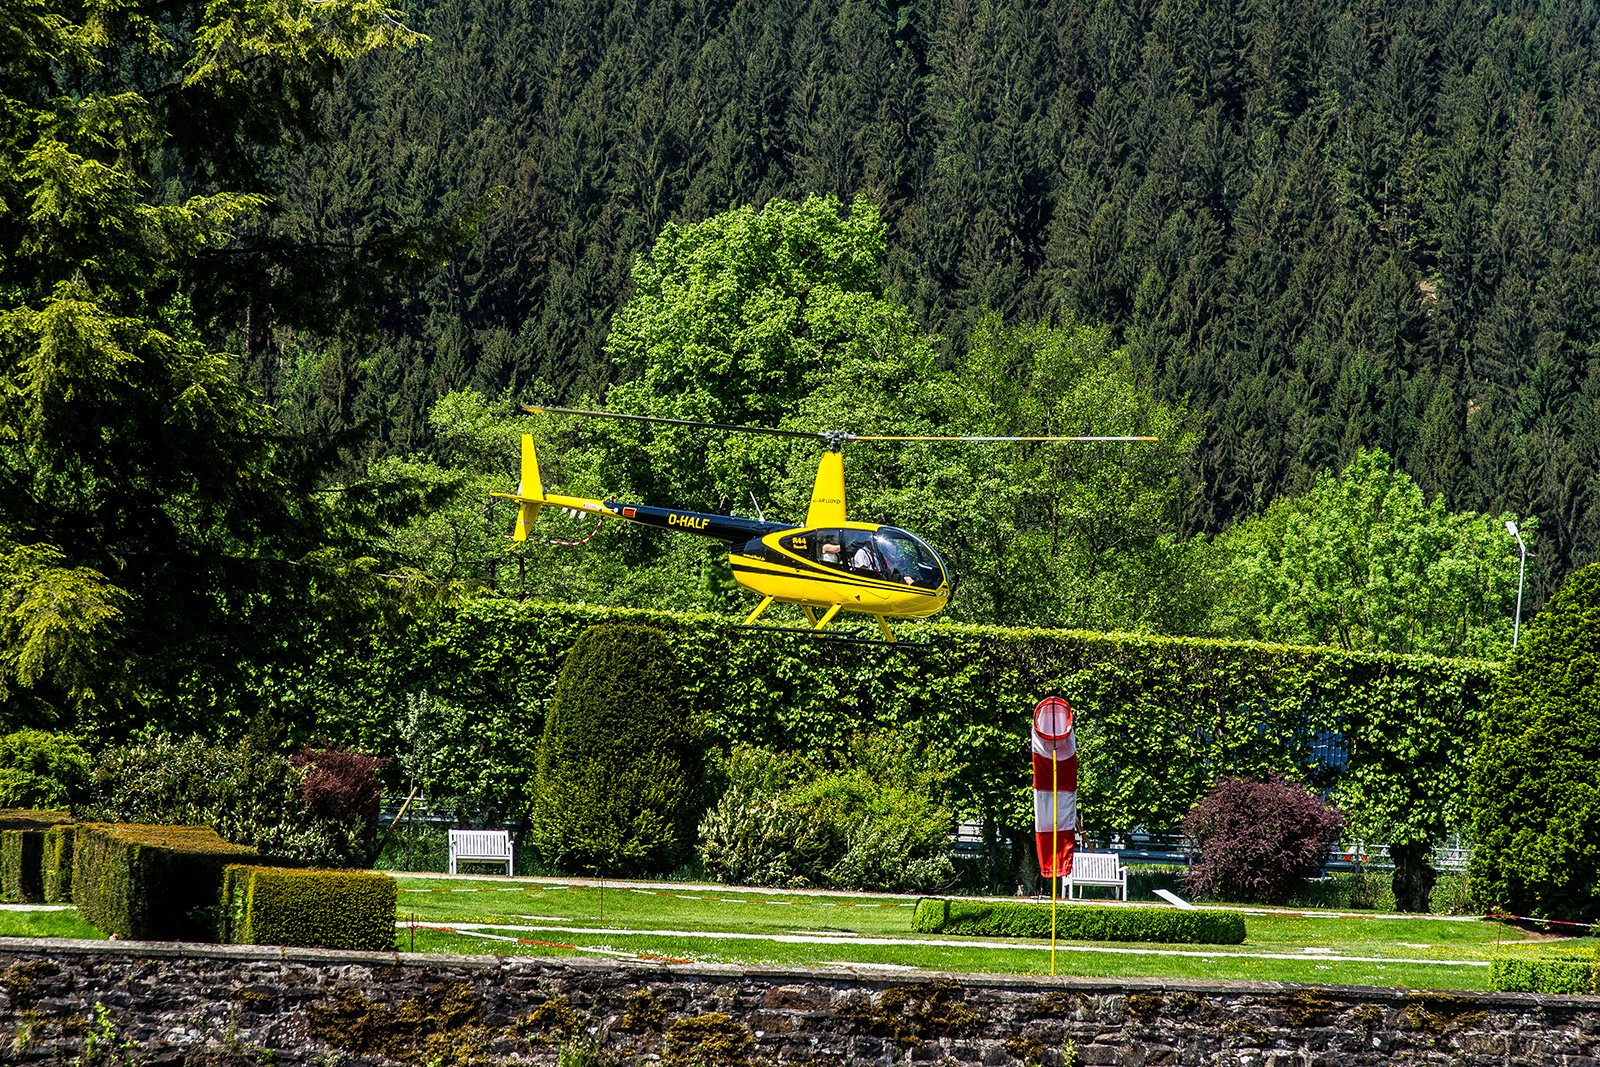 Helicopter in the castle park for wedding